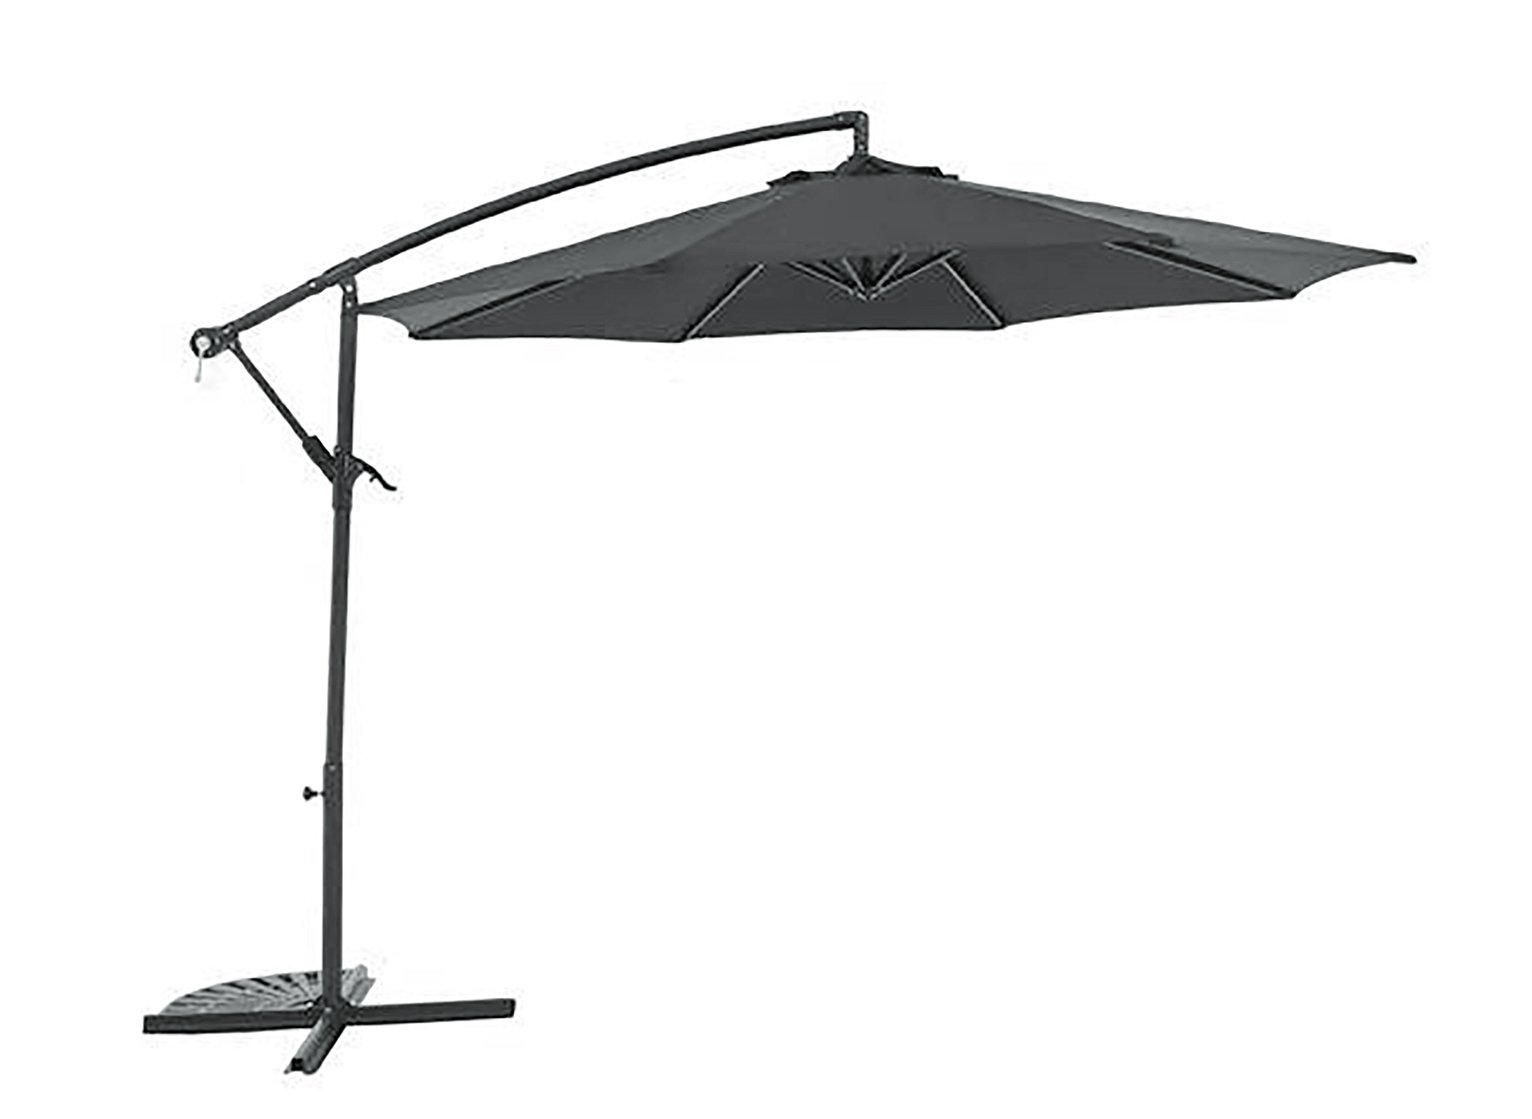 Argos Home Black Non-Rotating 2.5m Overhanging Parasol